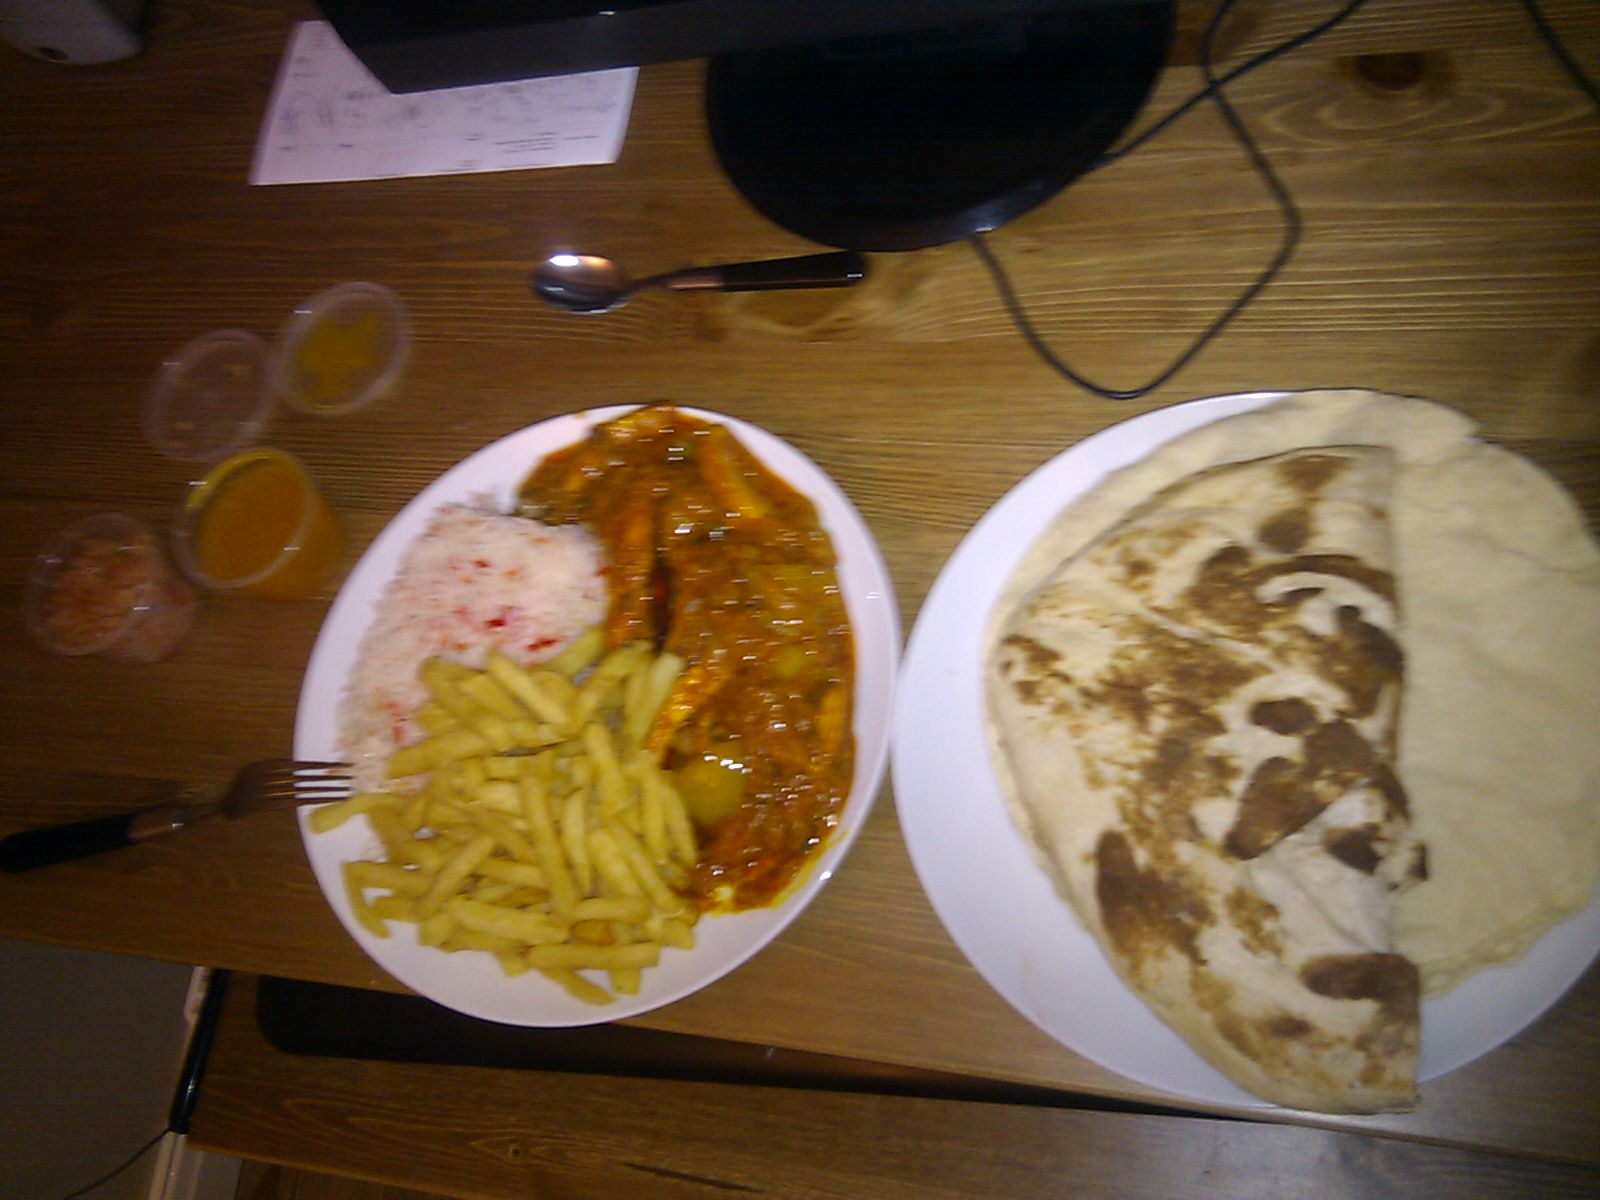 manchester, uk :: can never say no to a good curry. chicken dansak with pilau rice an garlic naan mmmm